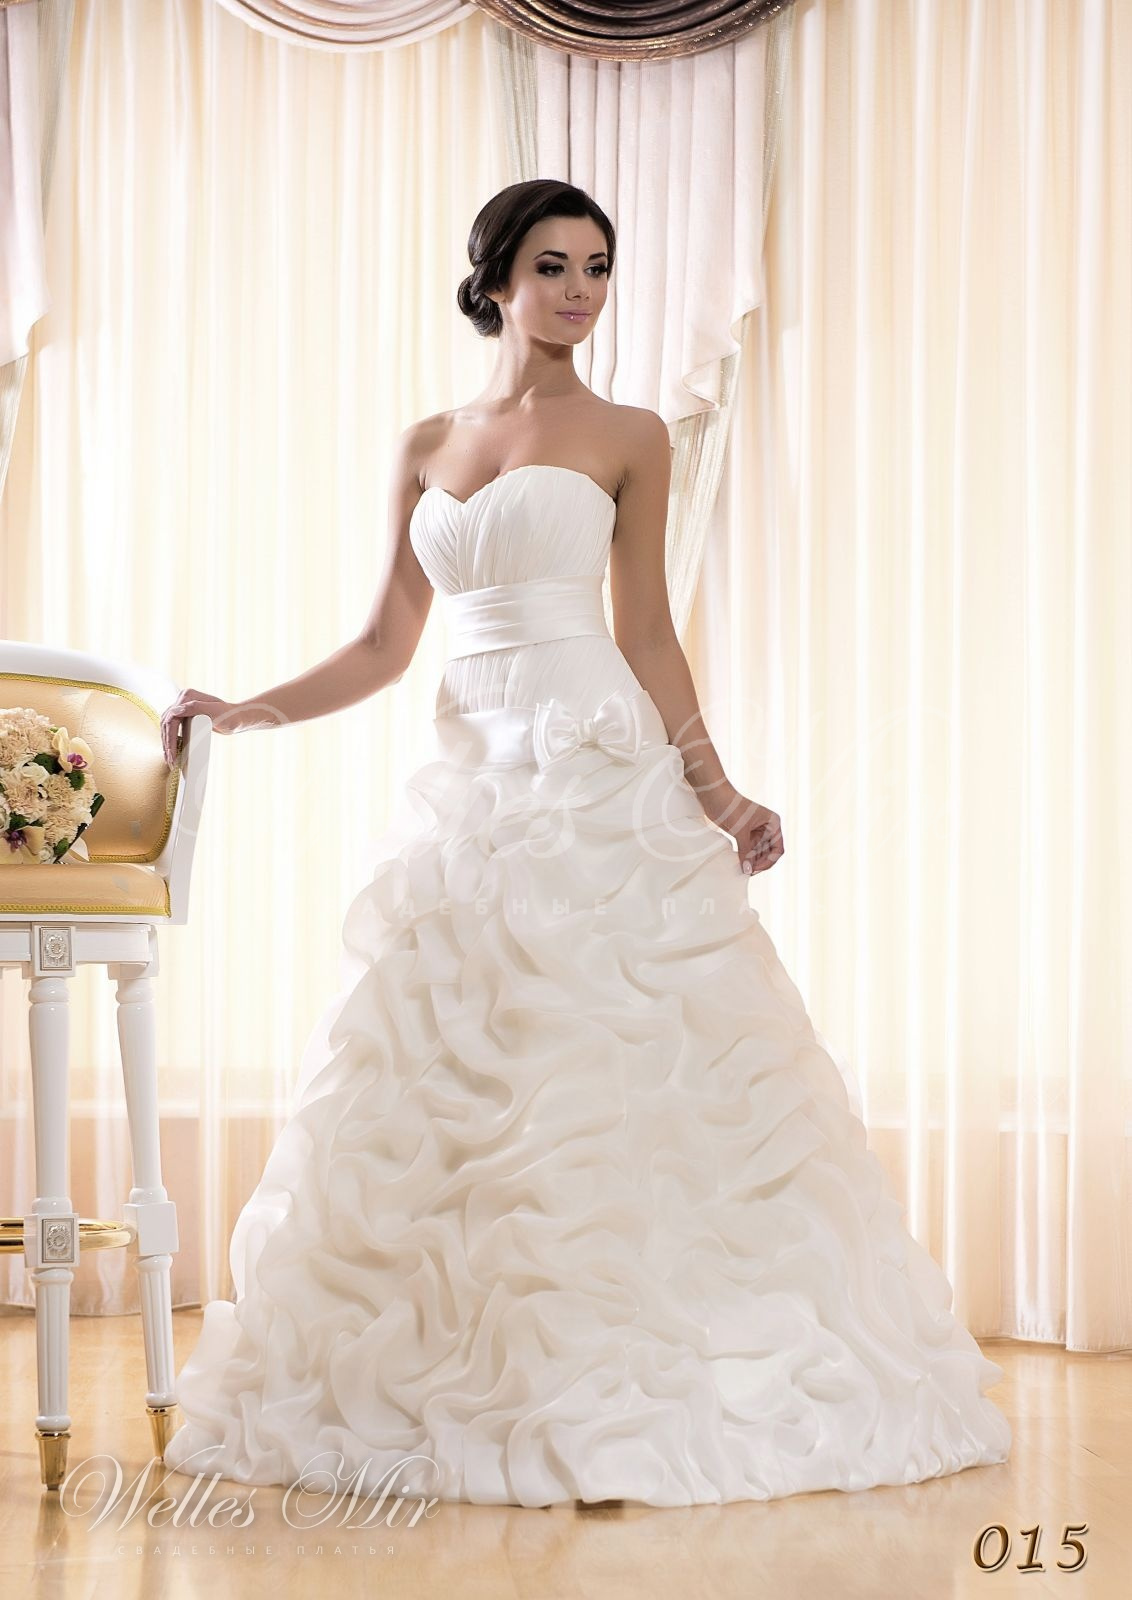 Wedding dresses 015